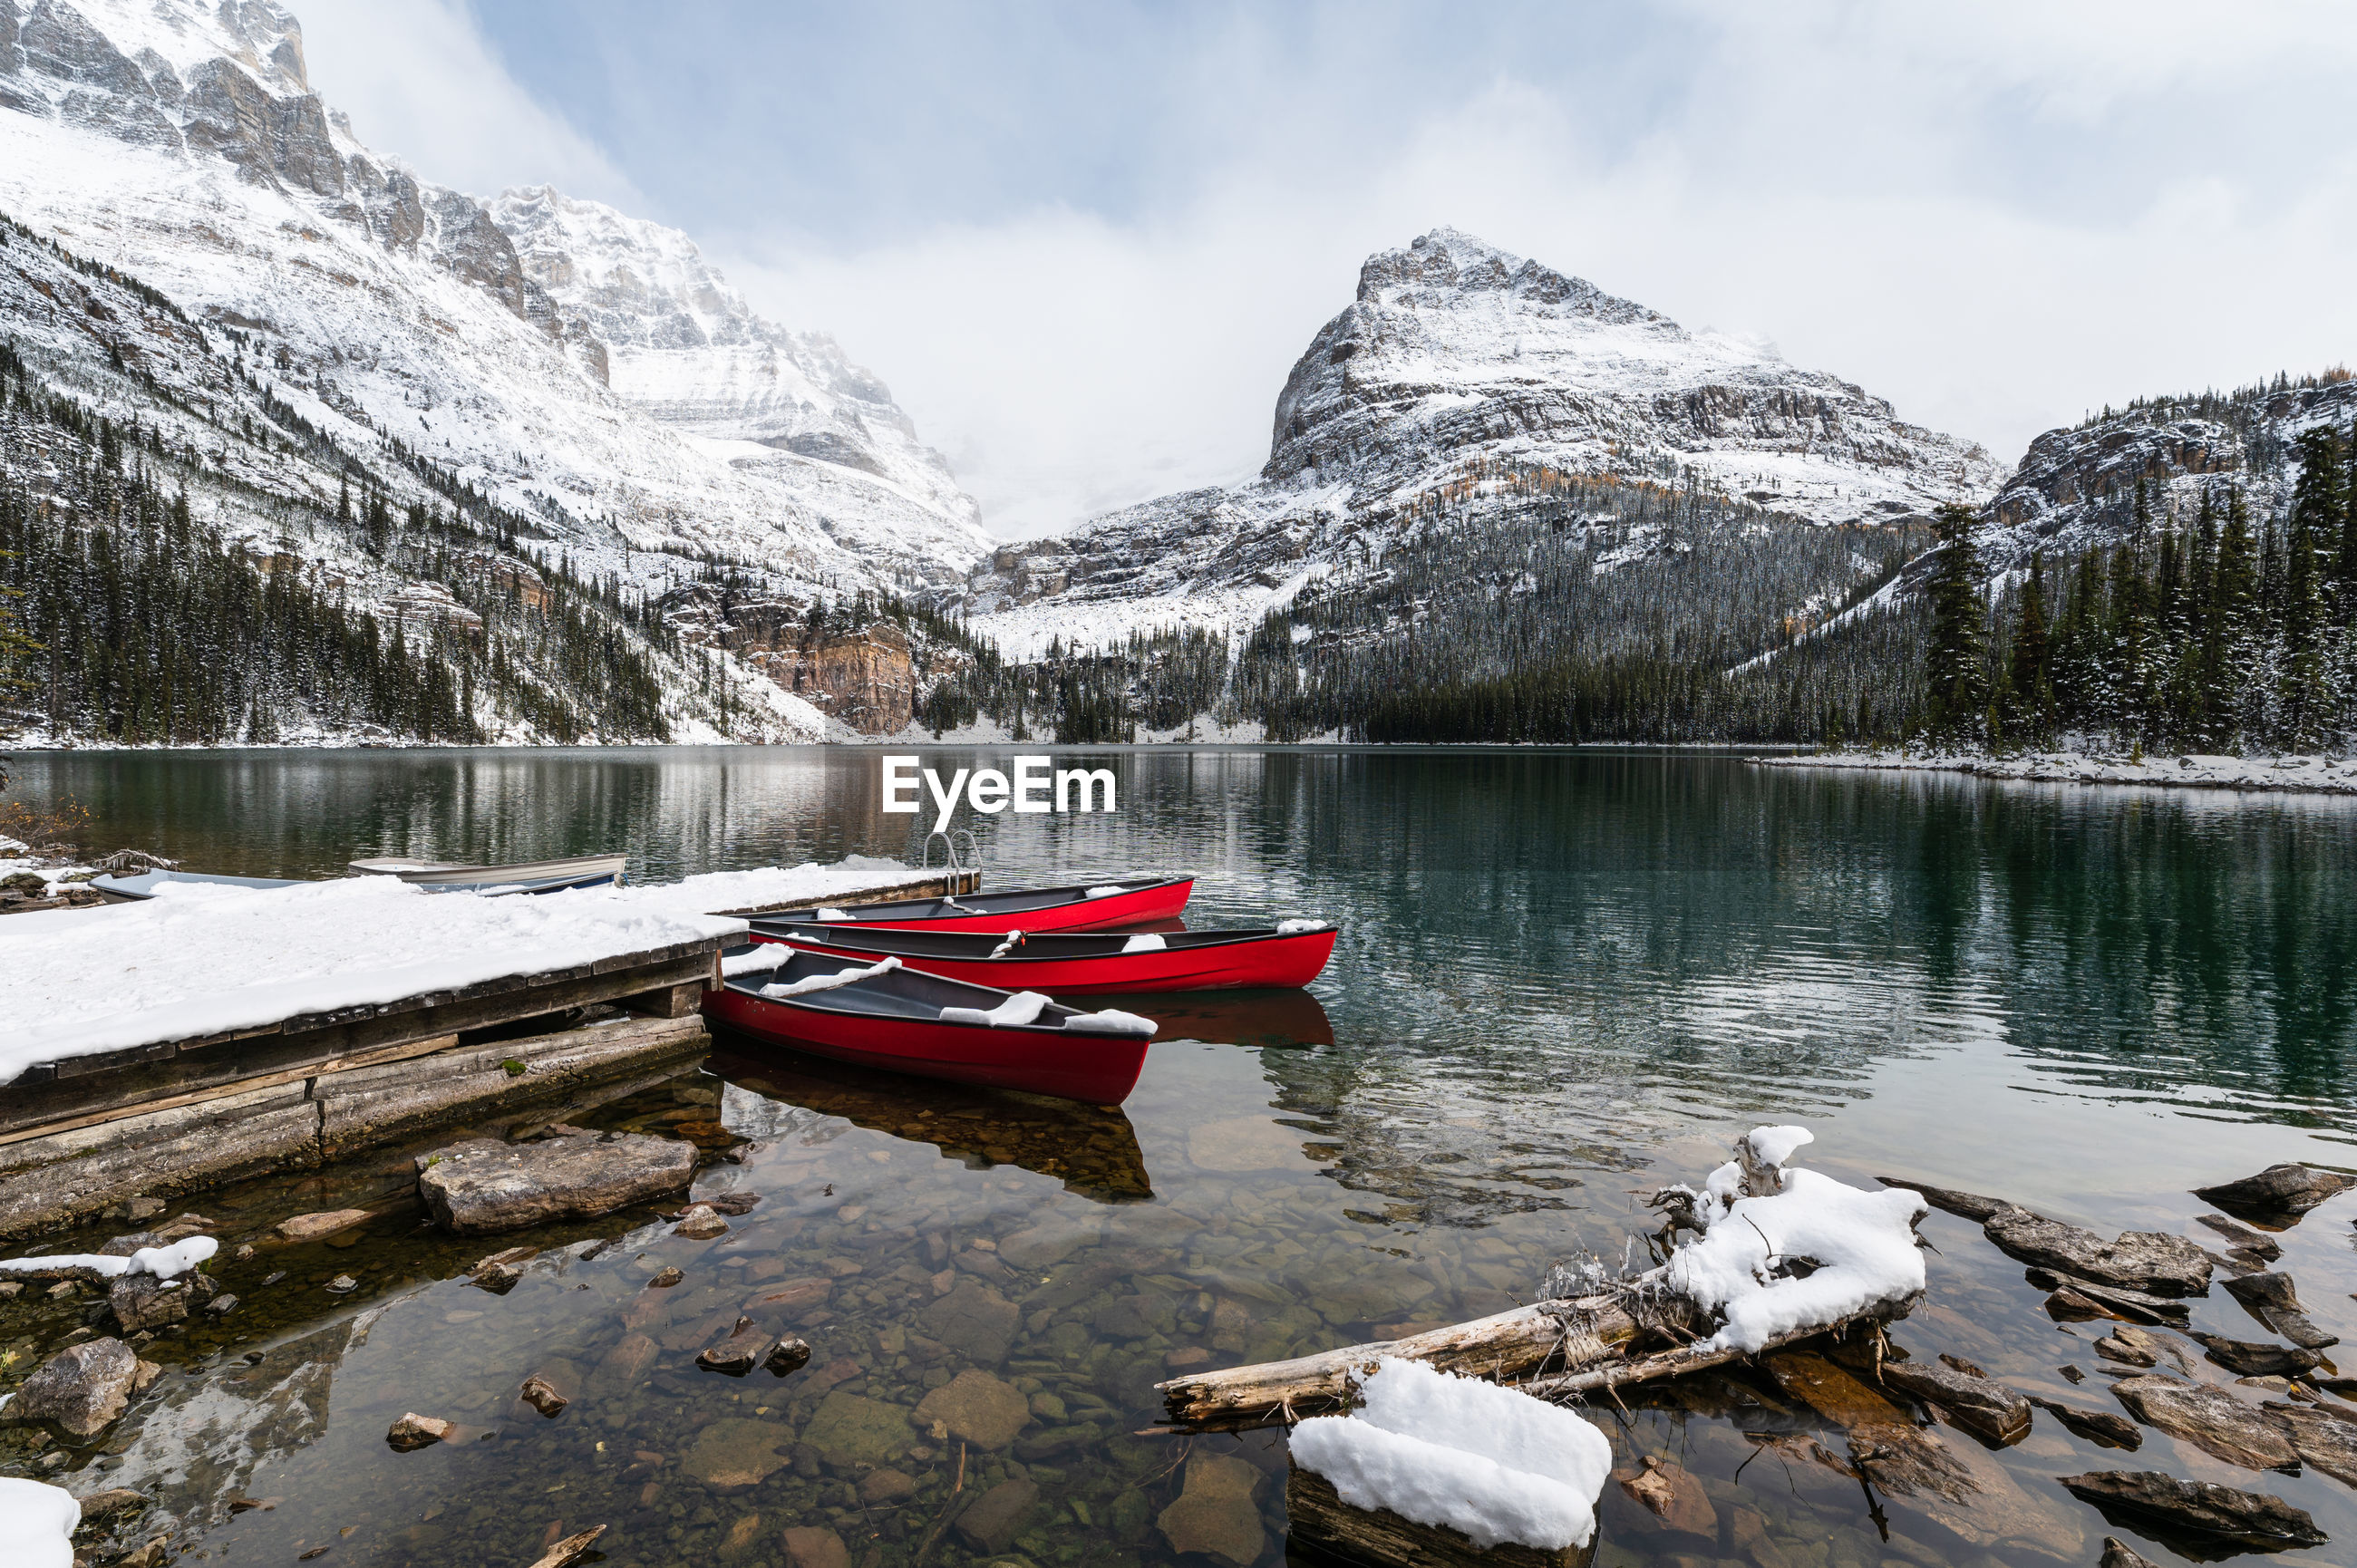 BOAT FLOATING ON LAKE AGAINST SNOWCAPPED MOUNTAINS